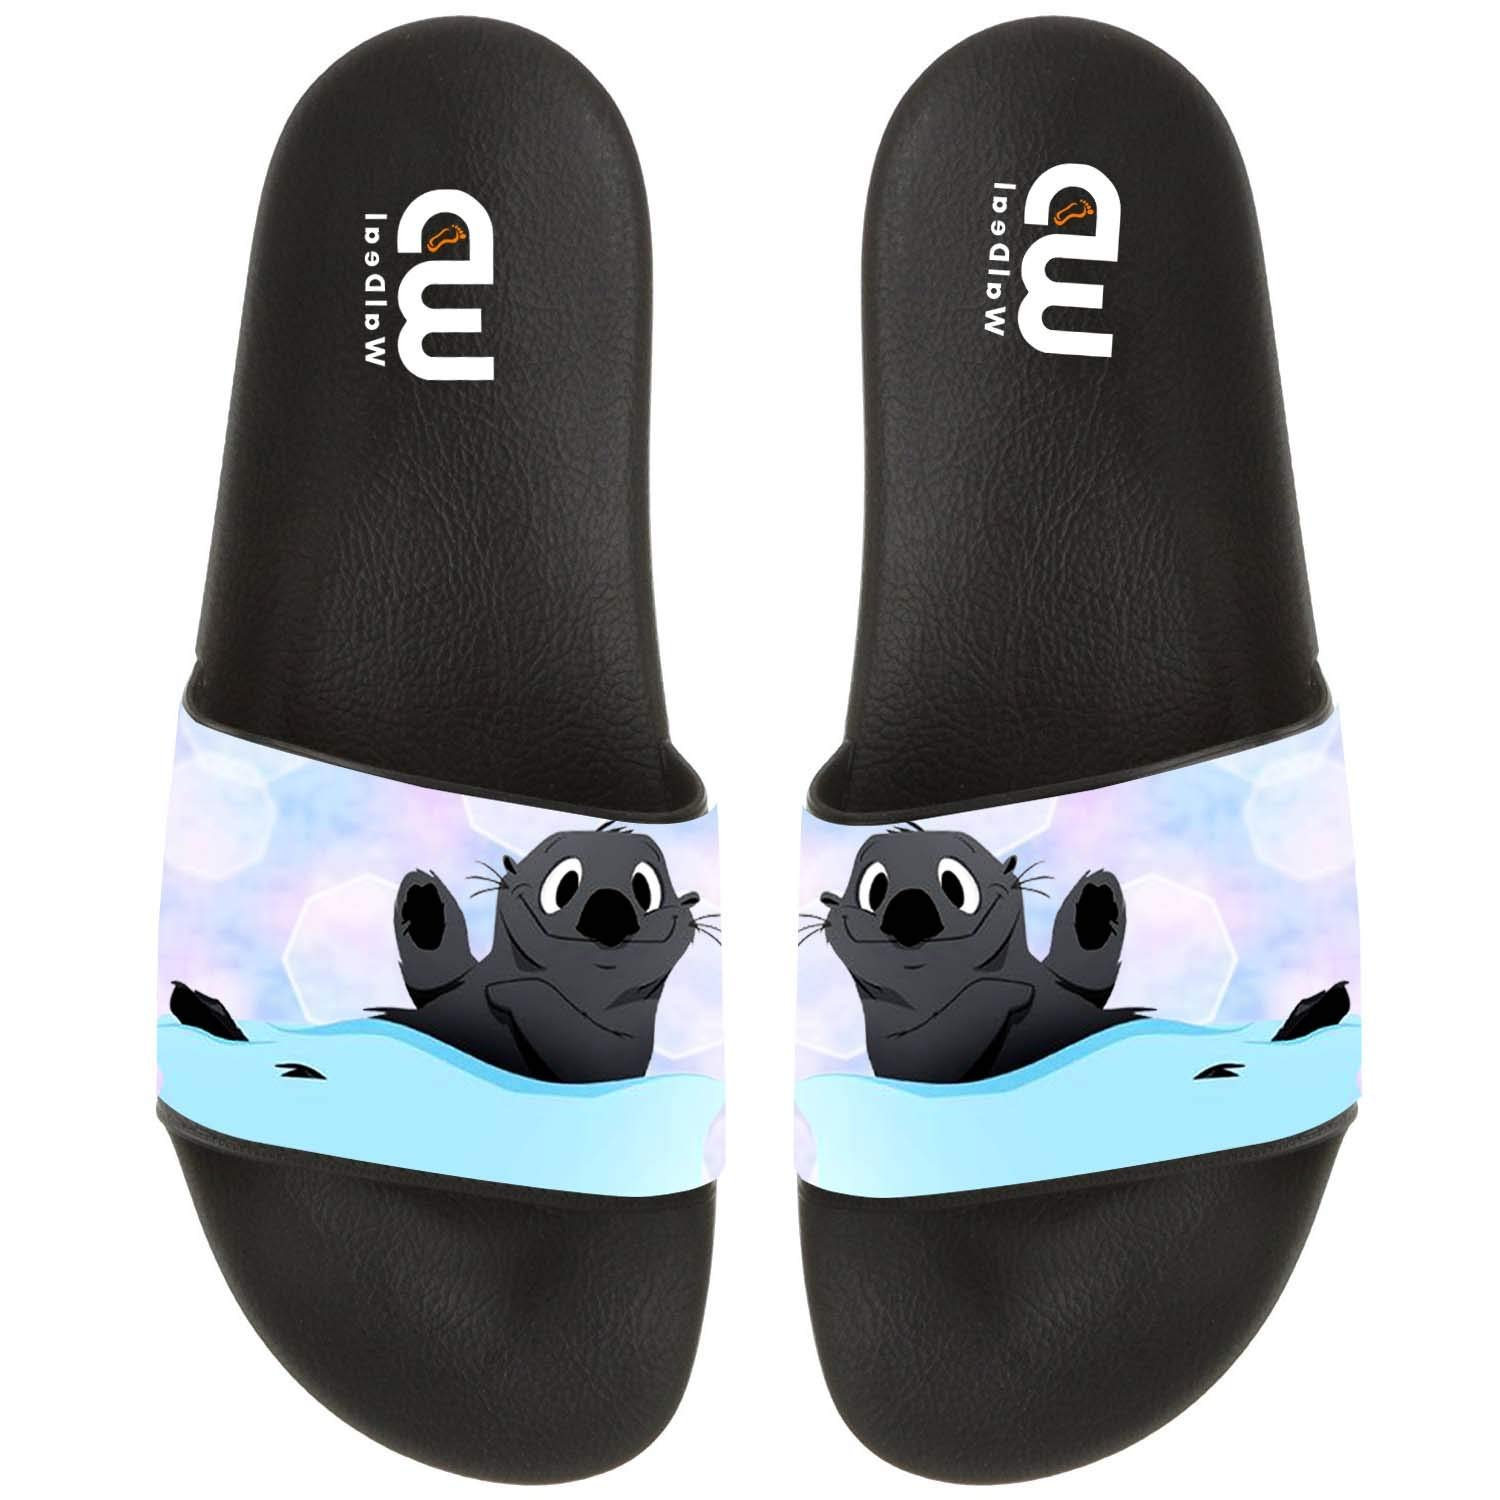 Cartoon Cute Otter Swimming Summer Slide Slippers For Men Women Kid Indoor Open-Toe Sandal Shoes